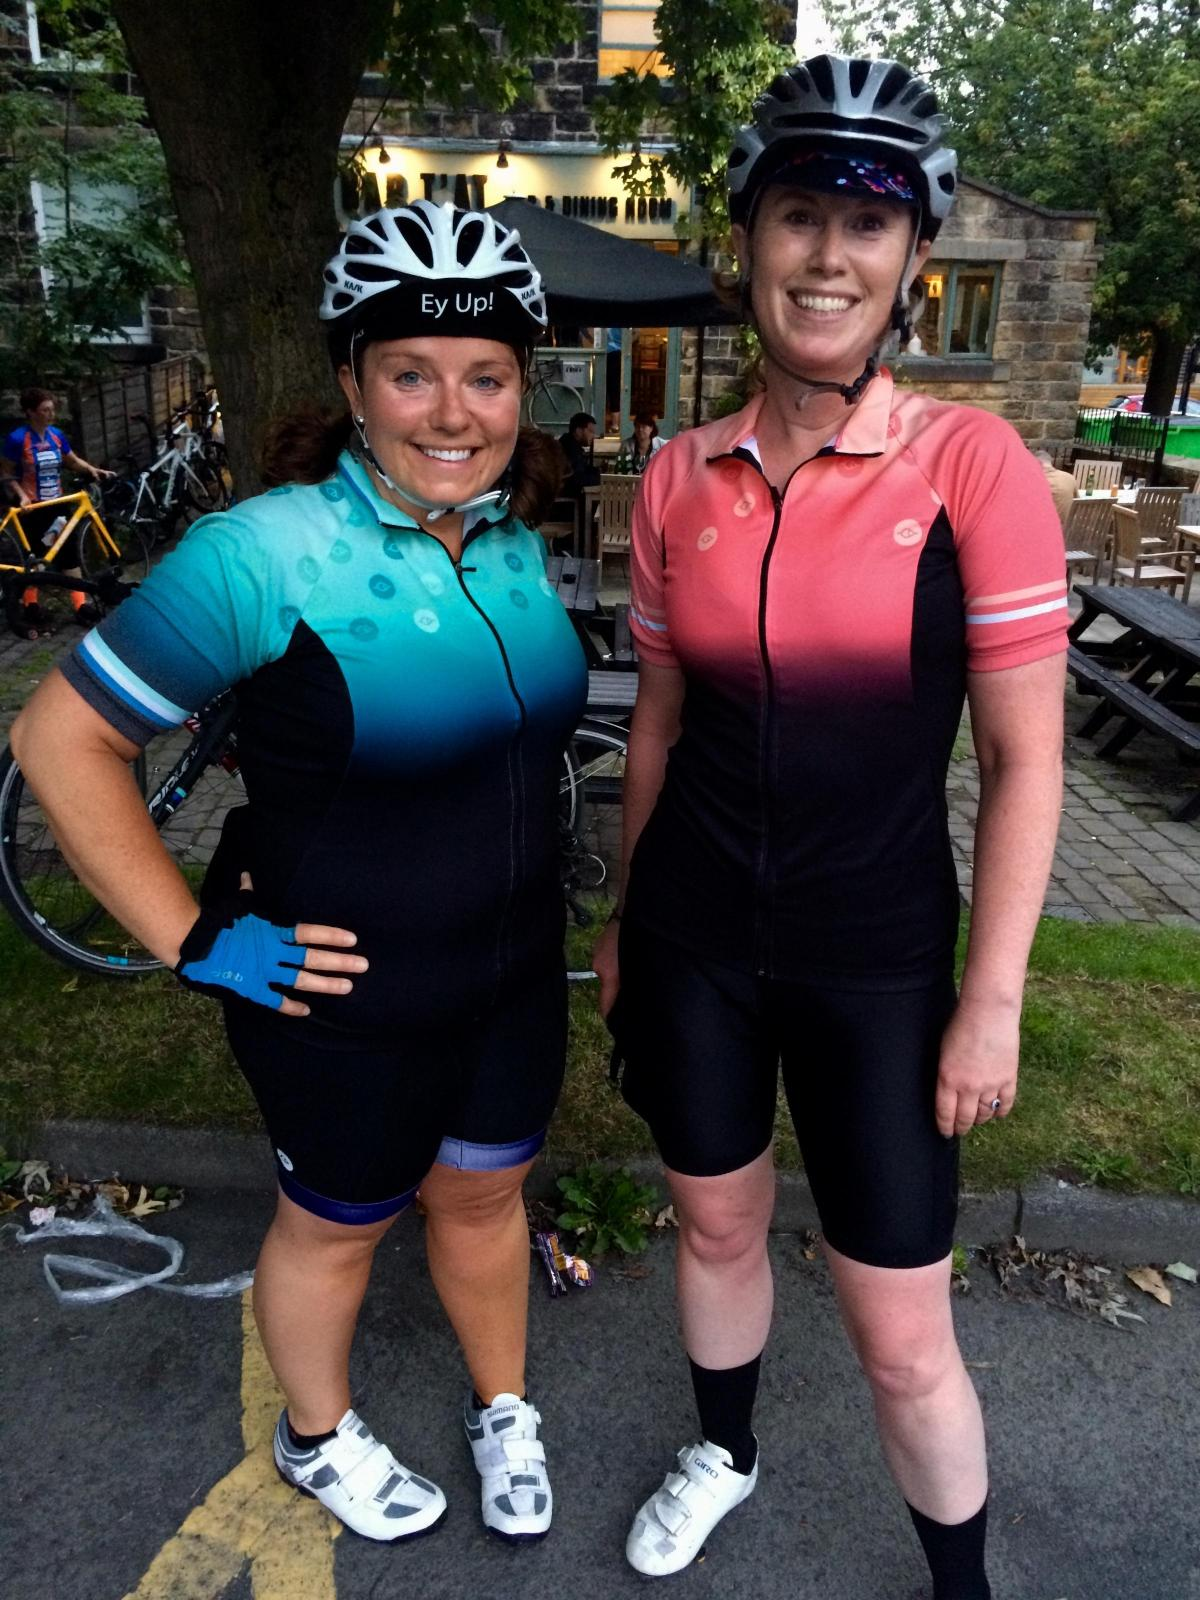 munity cycling groups launched across the country by Ilkey based